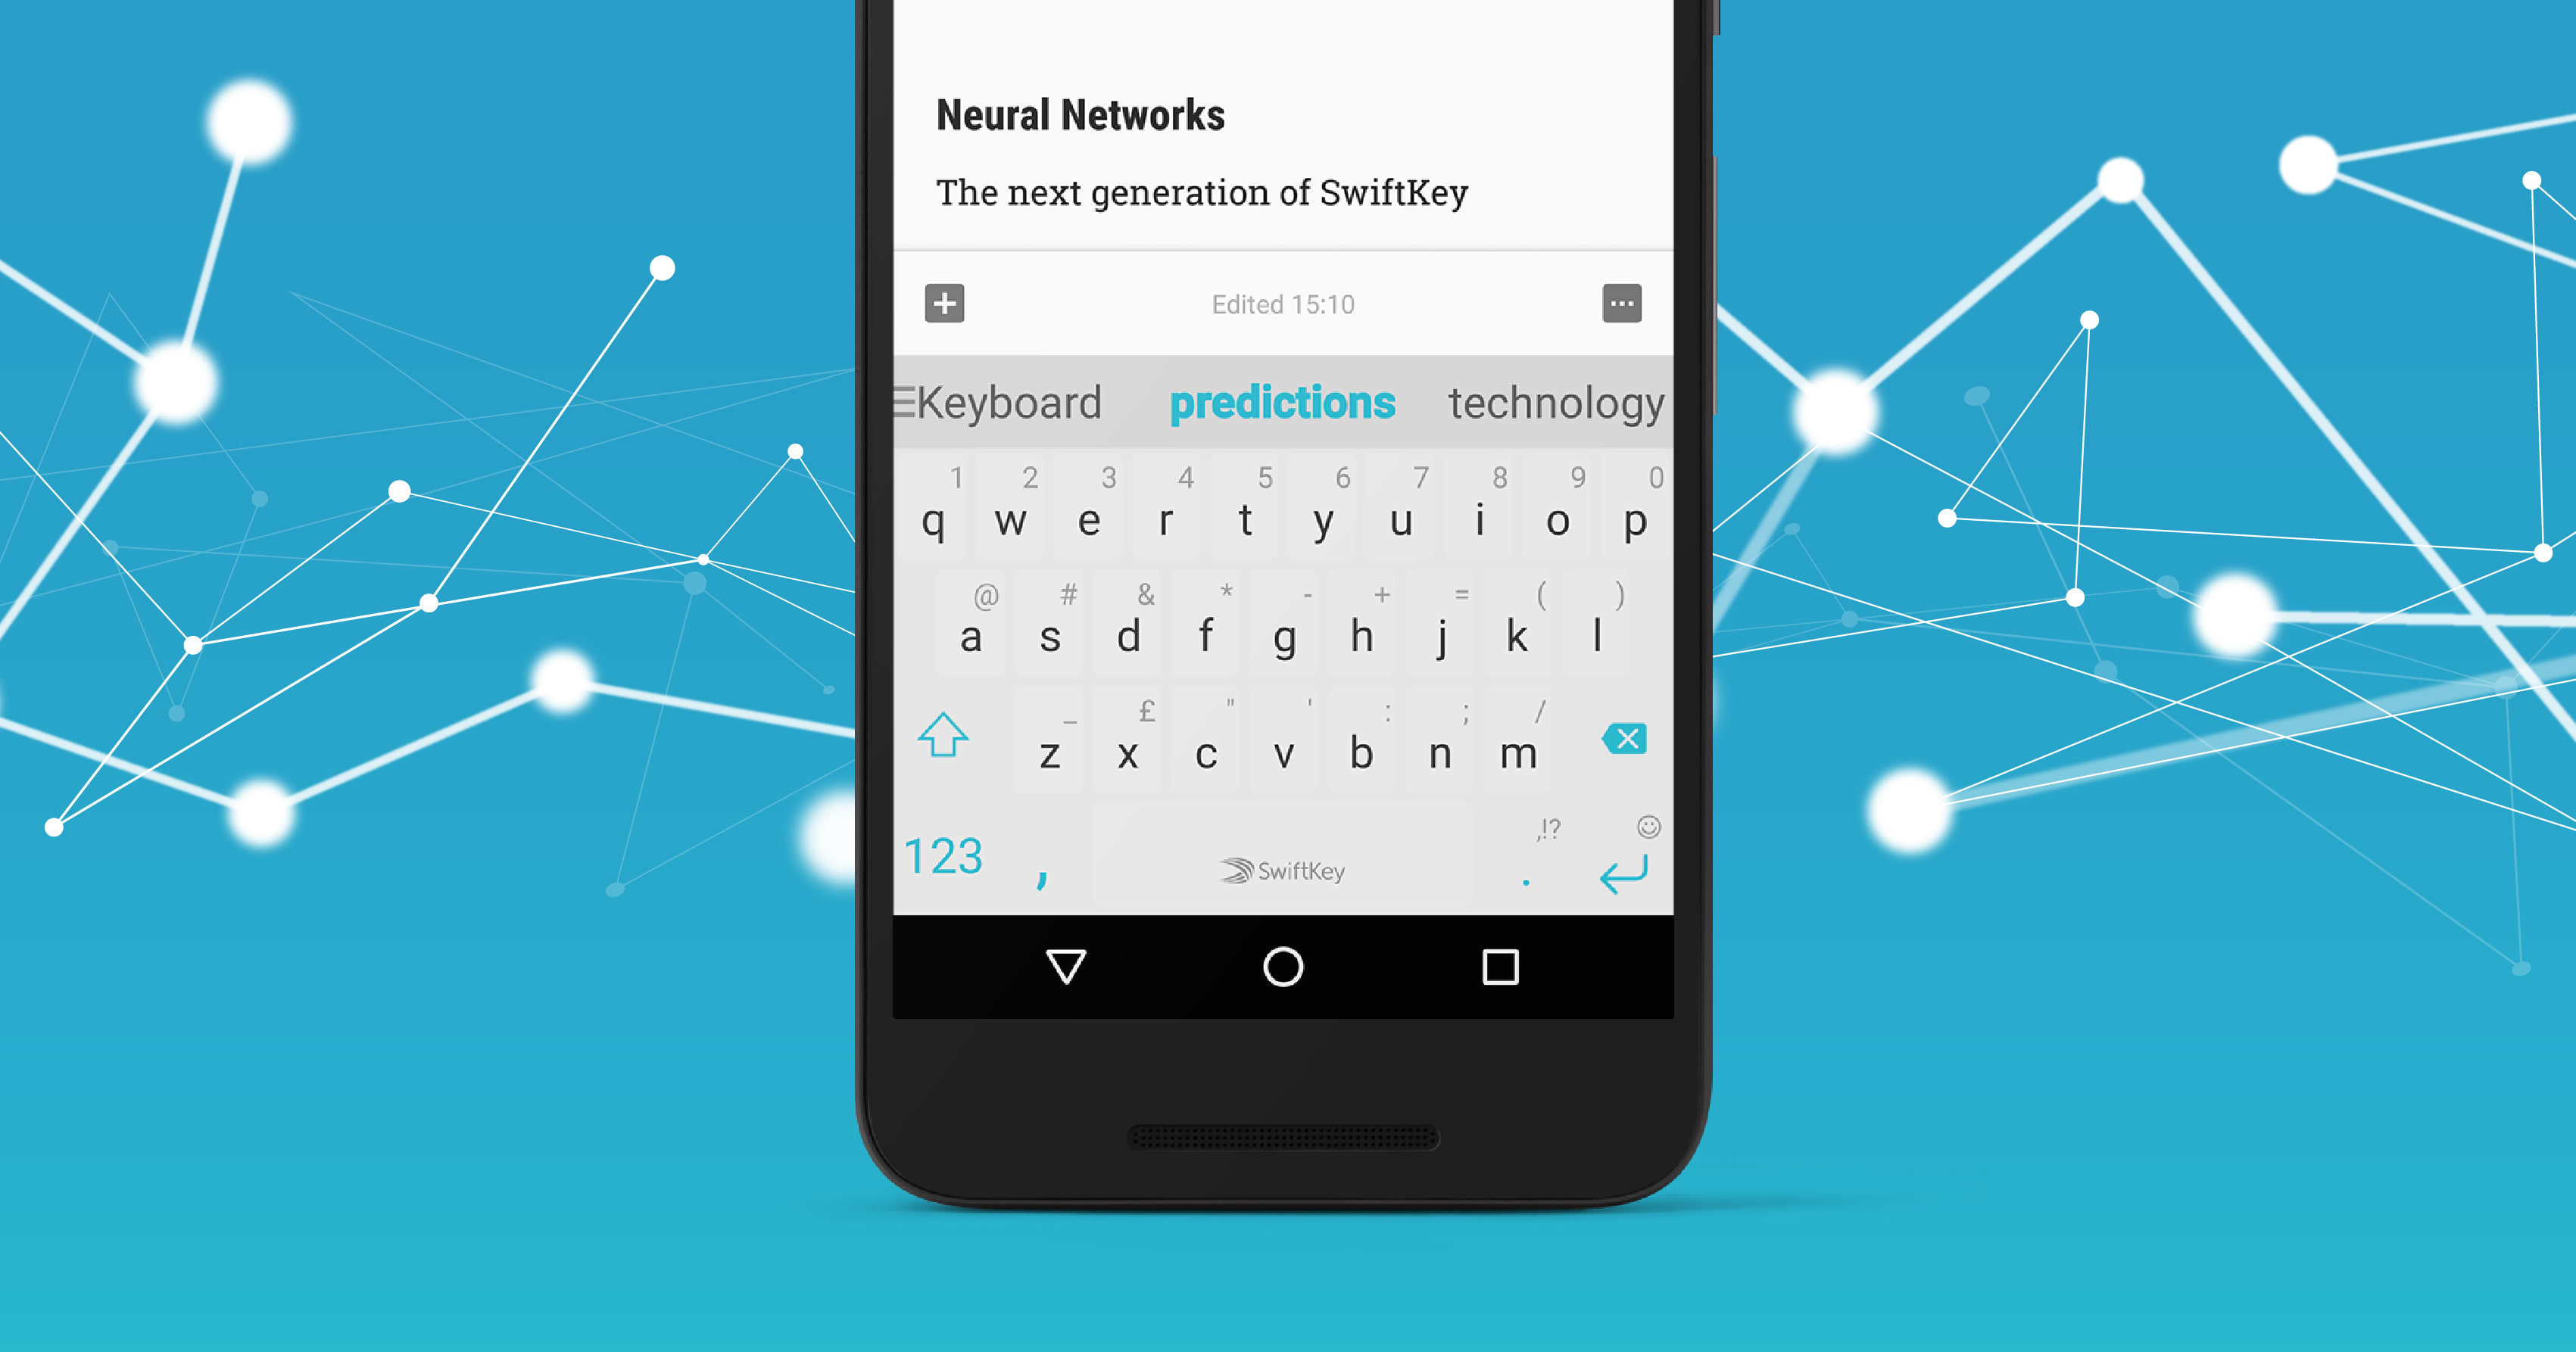 SwiftKey for Android is now powered by a neural network